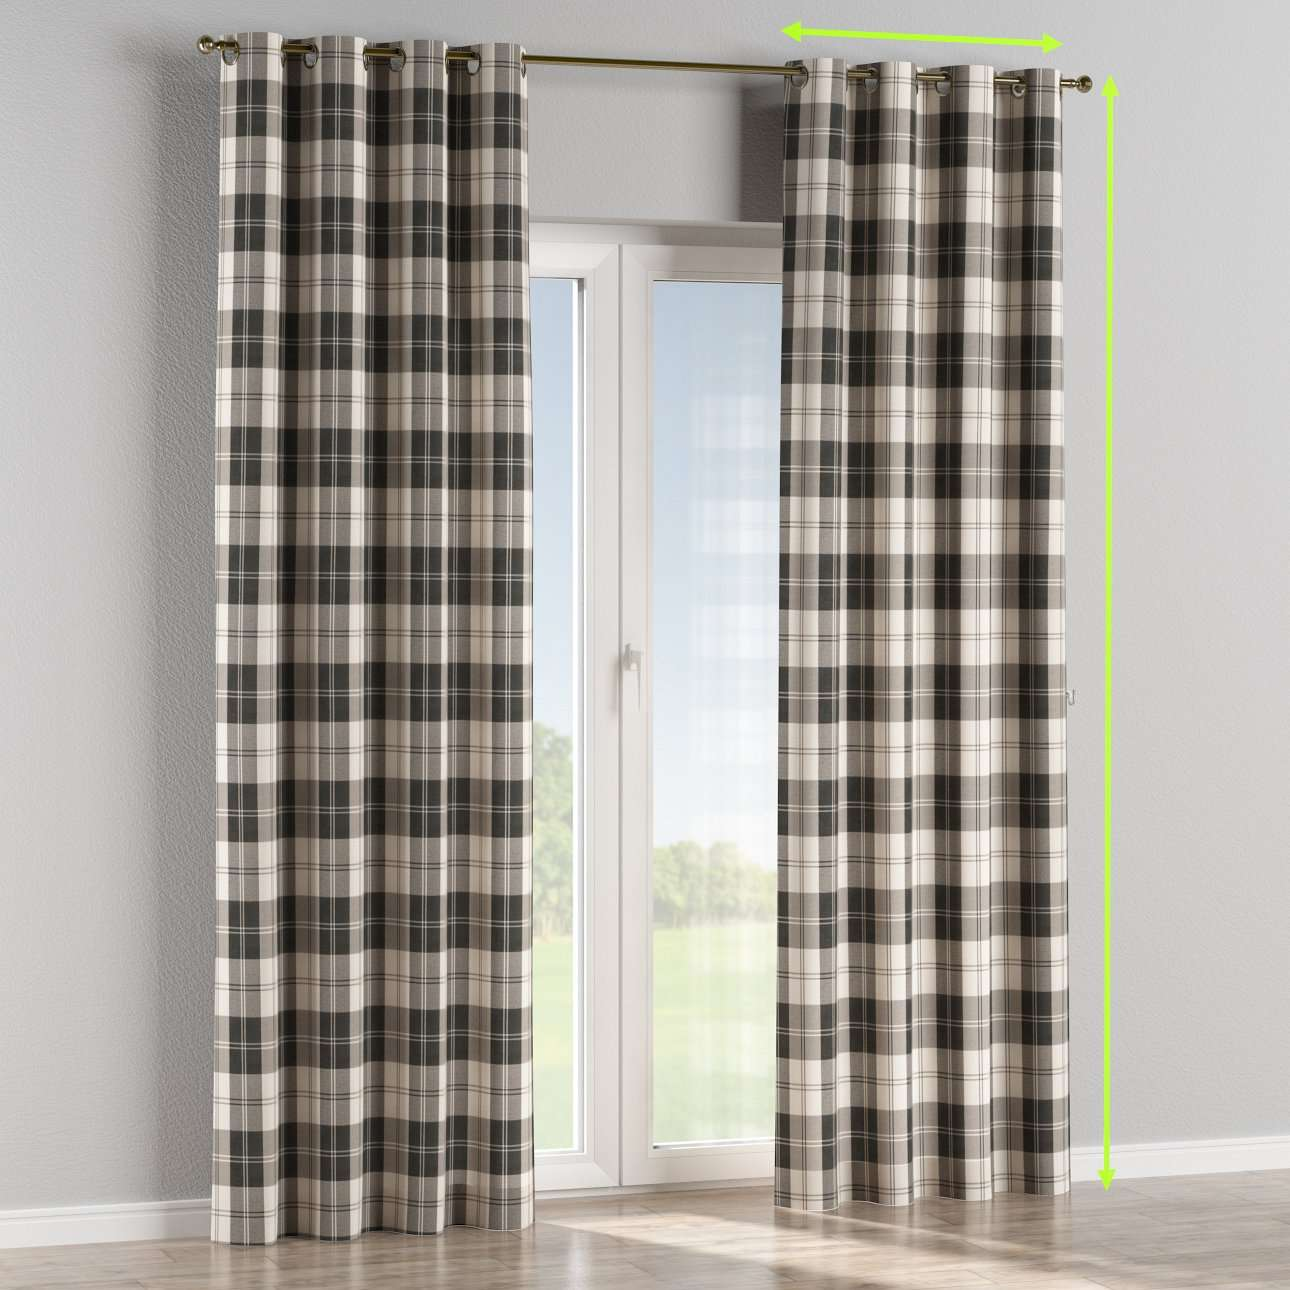 Eyelet lined curtains in collection Edinburgh , fabric: 115-74